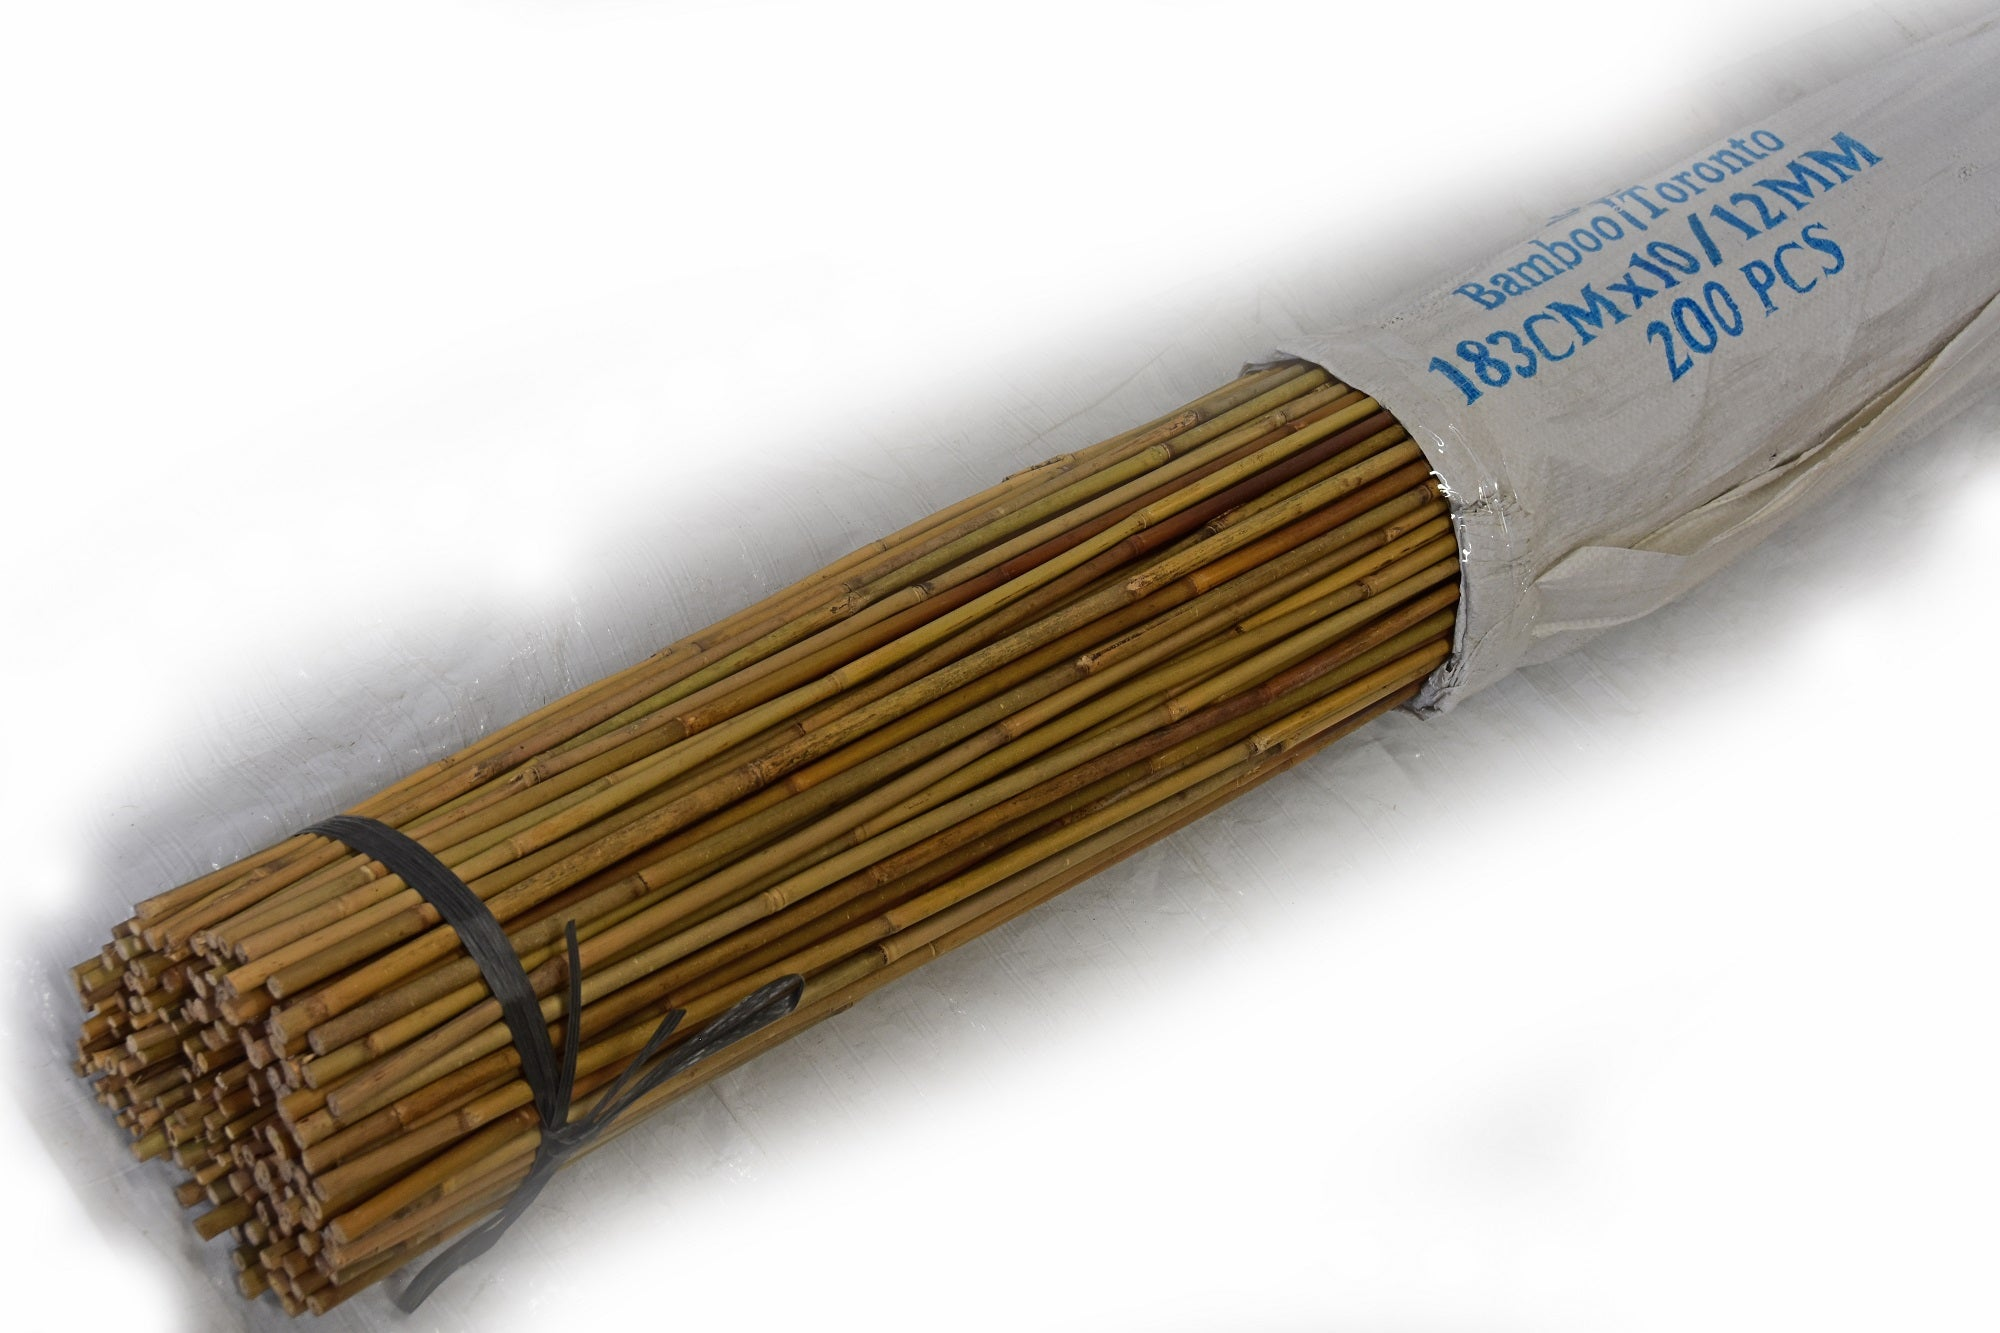 Tonkin Bamboo Pole 10-12mm x 6' Bundle of 200